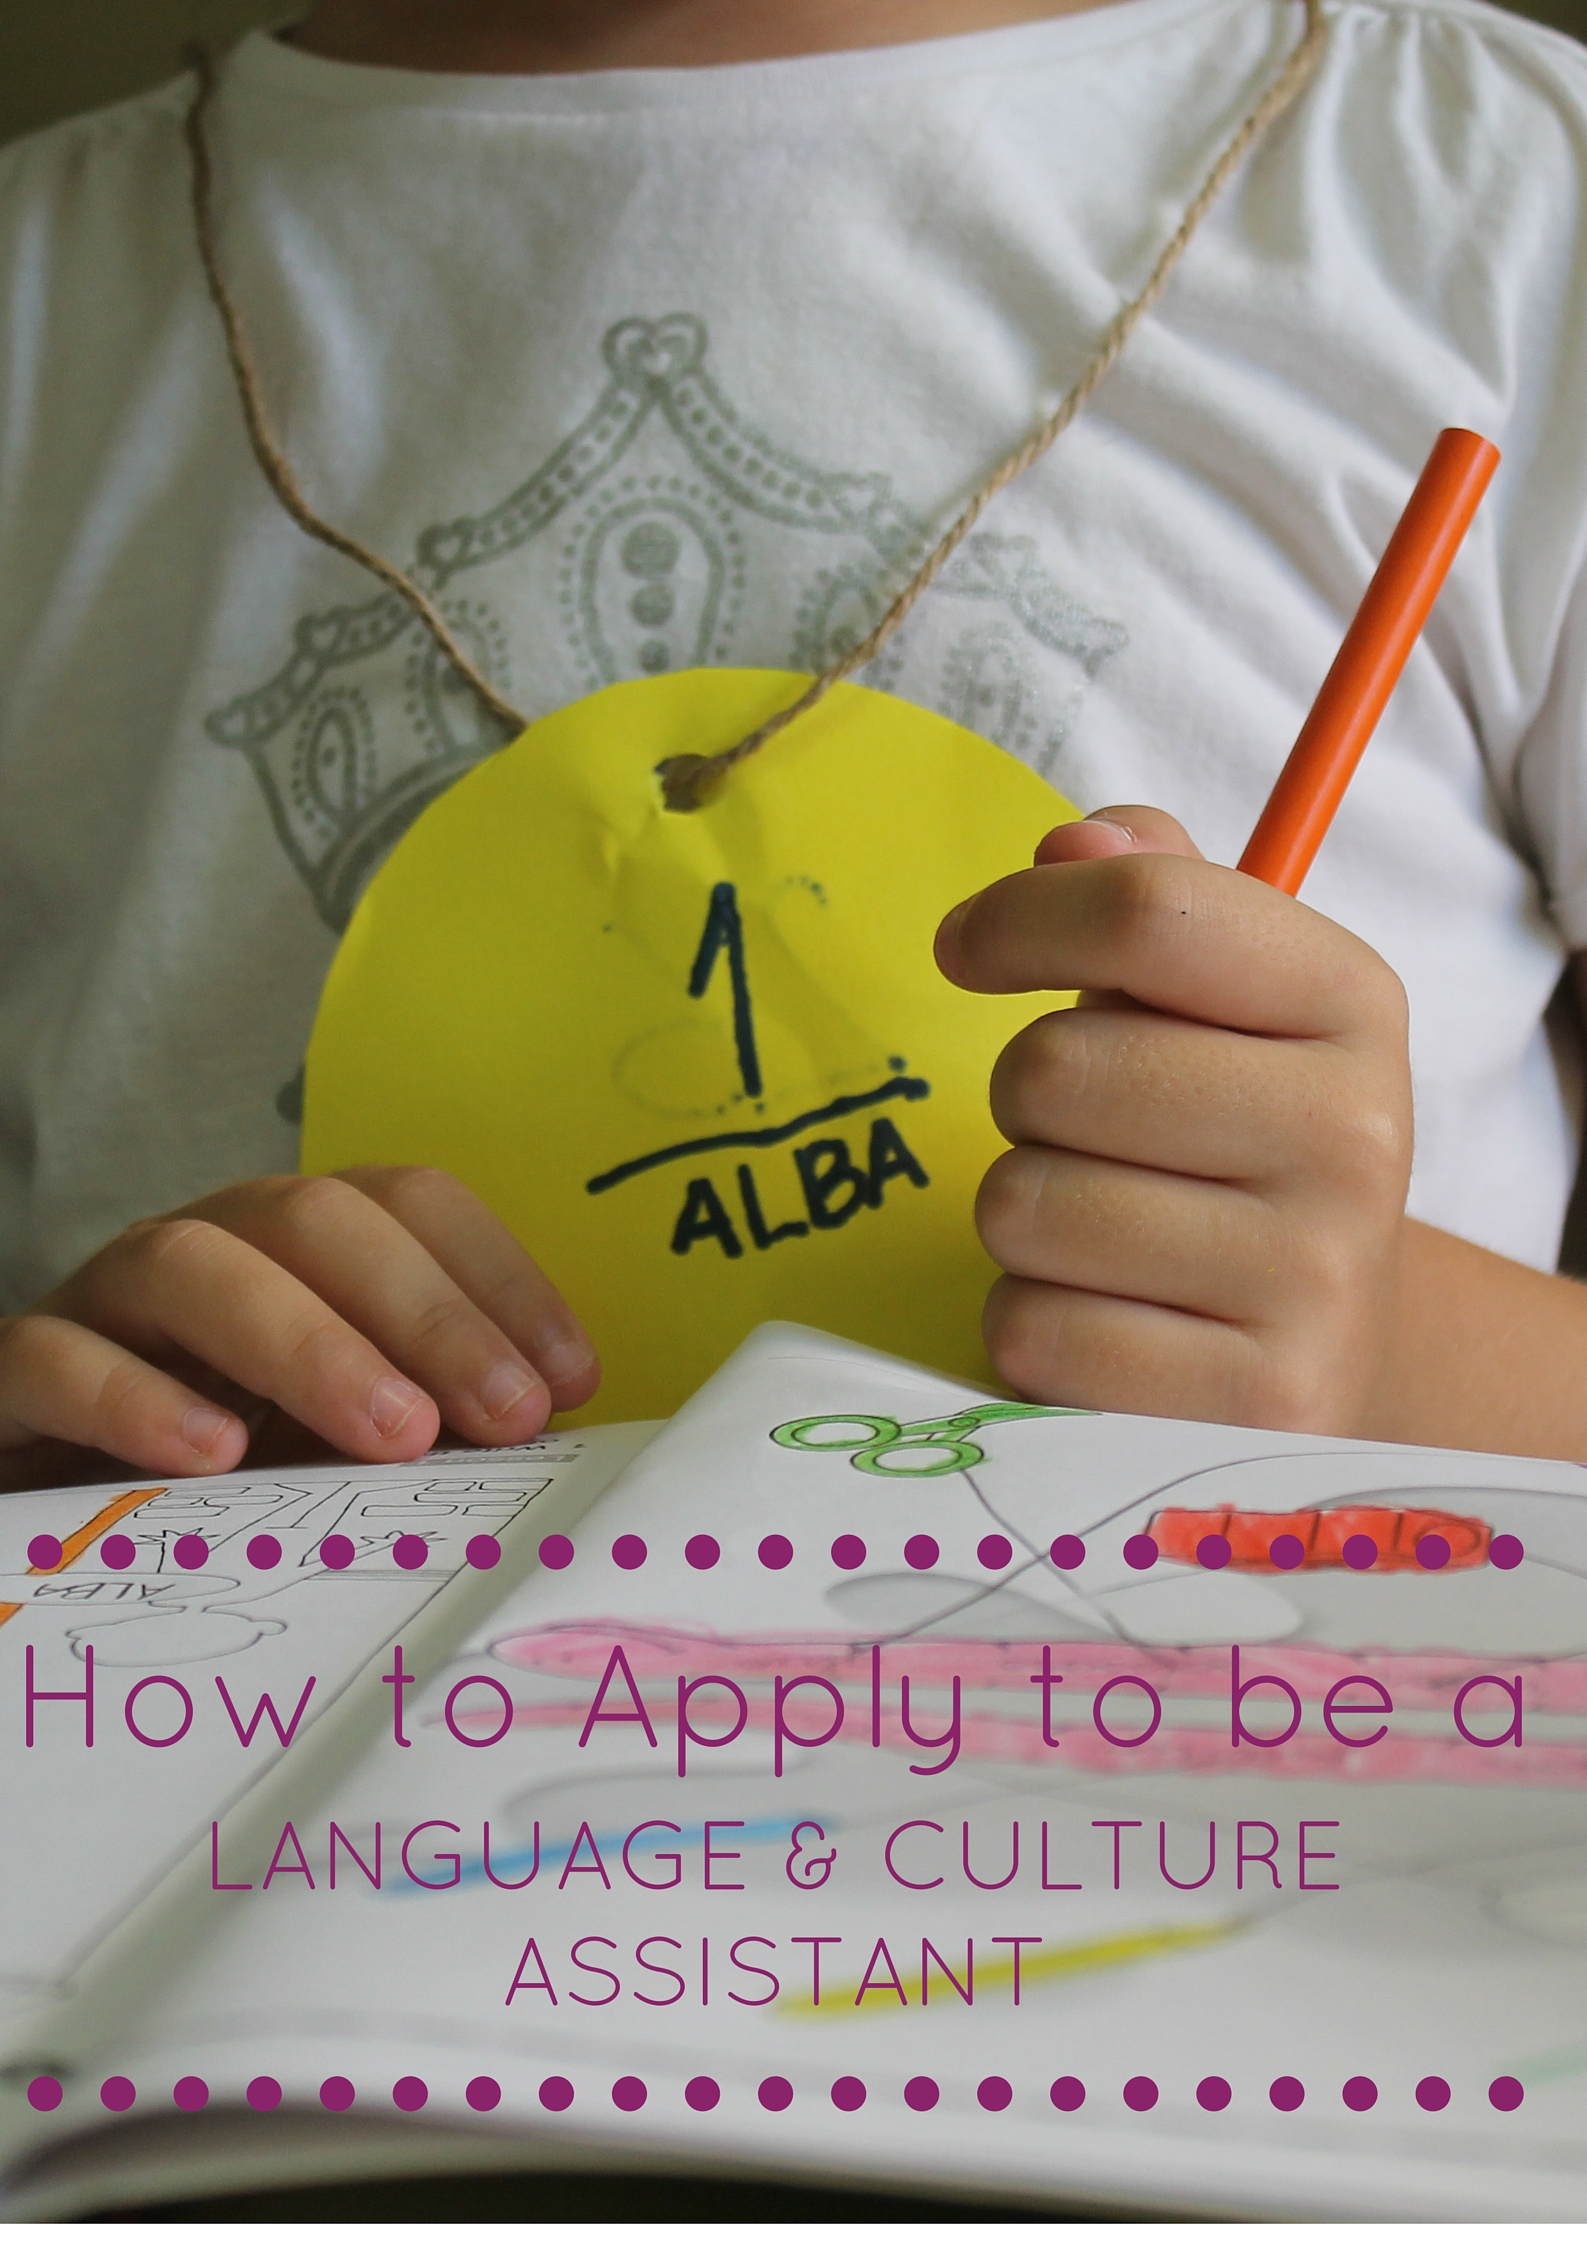 Applying To To The Auxiliares Program How To Apply To Be A Language